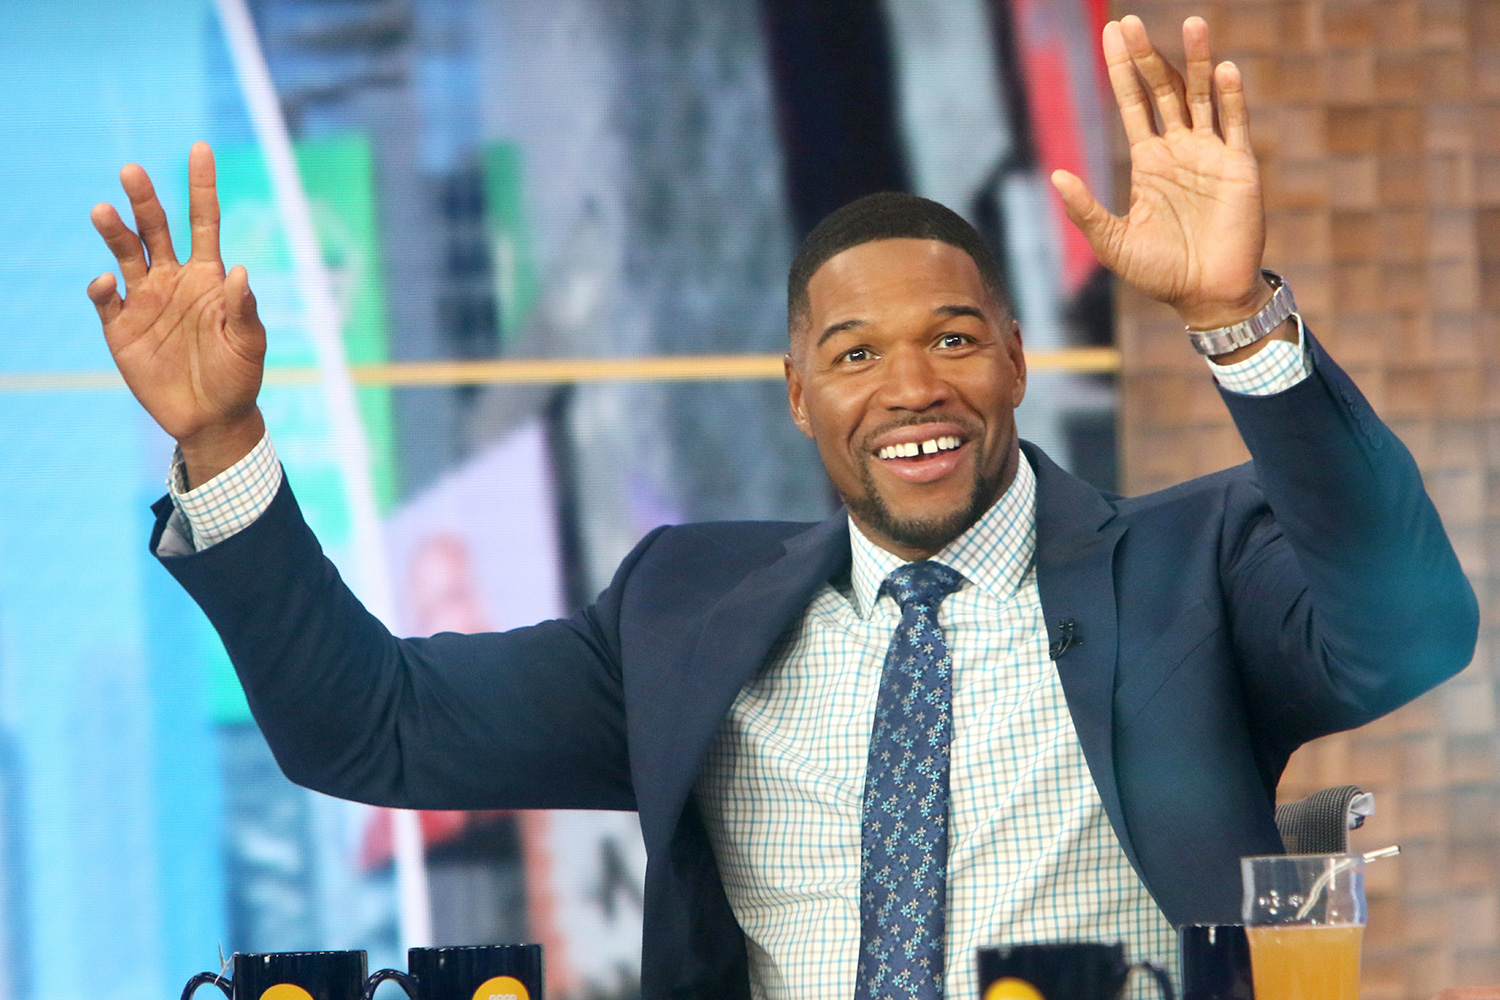 Michael Strahan of Good Morning America Getting Ready for the Show